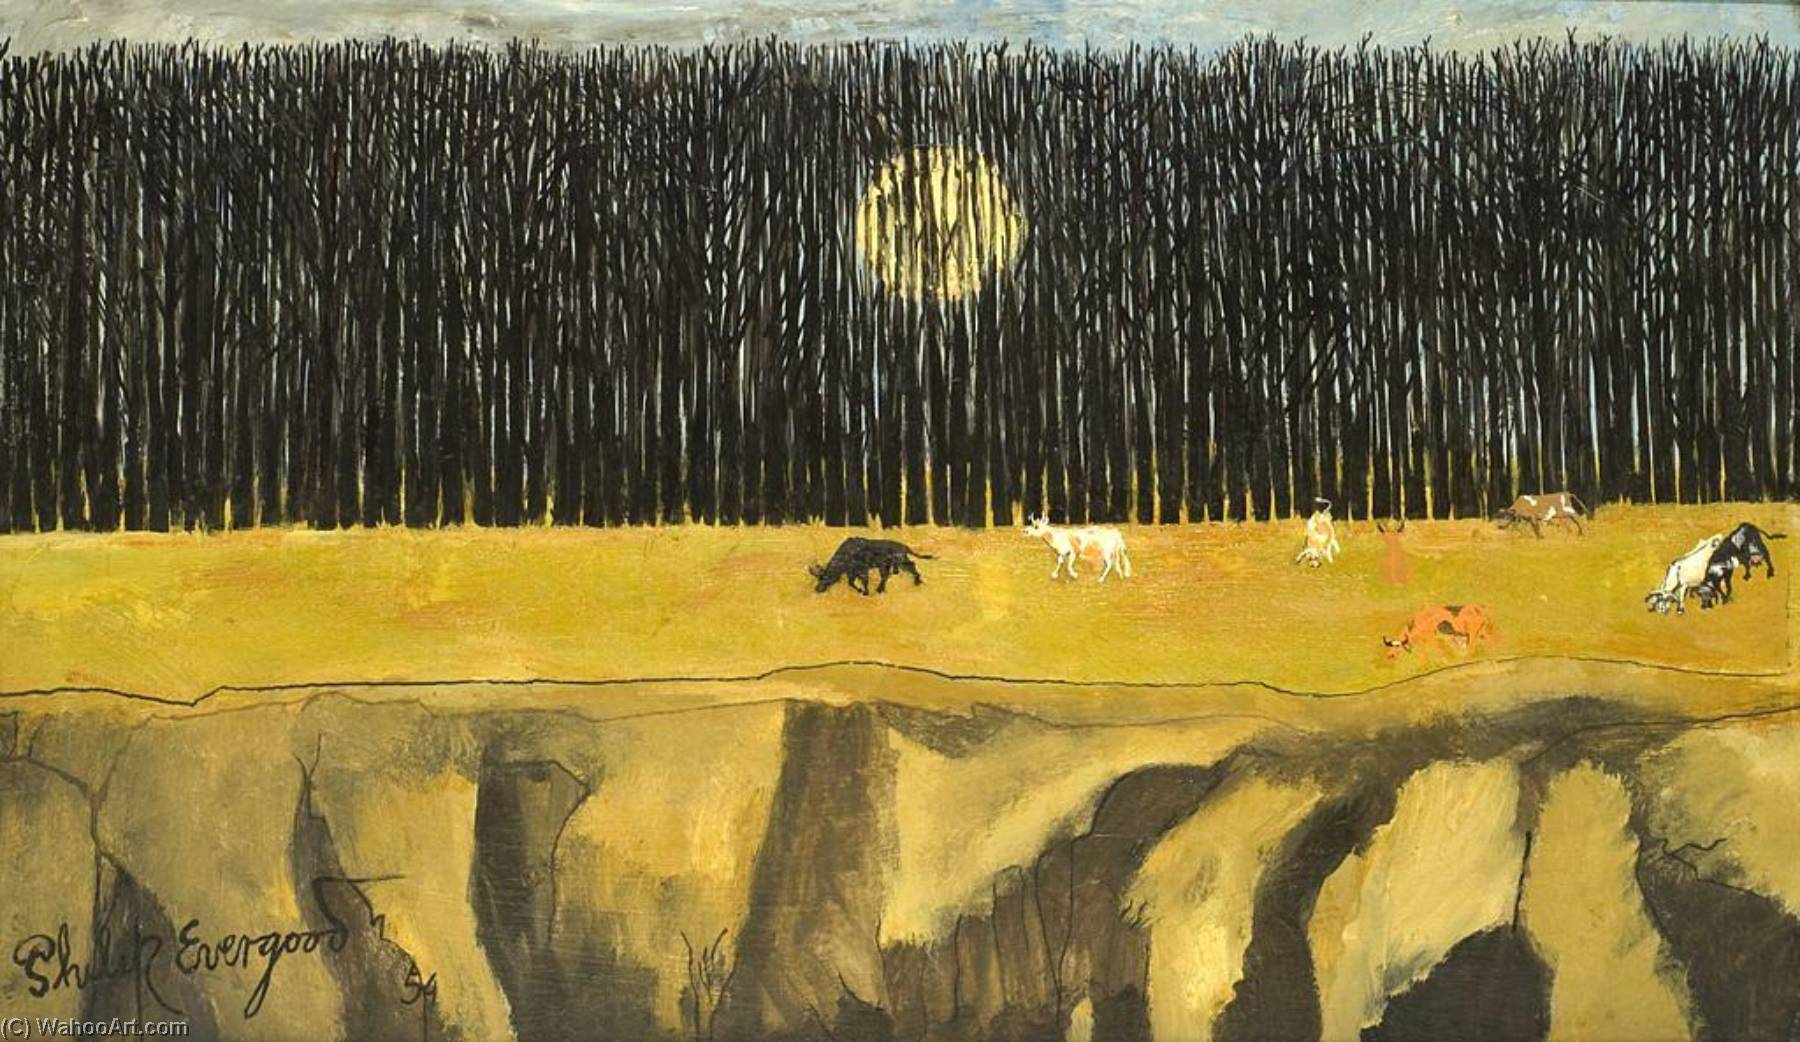 Sun Behind a Wood, 1954 by Philip Evergood (1901-1973) | WahooArt.com